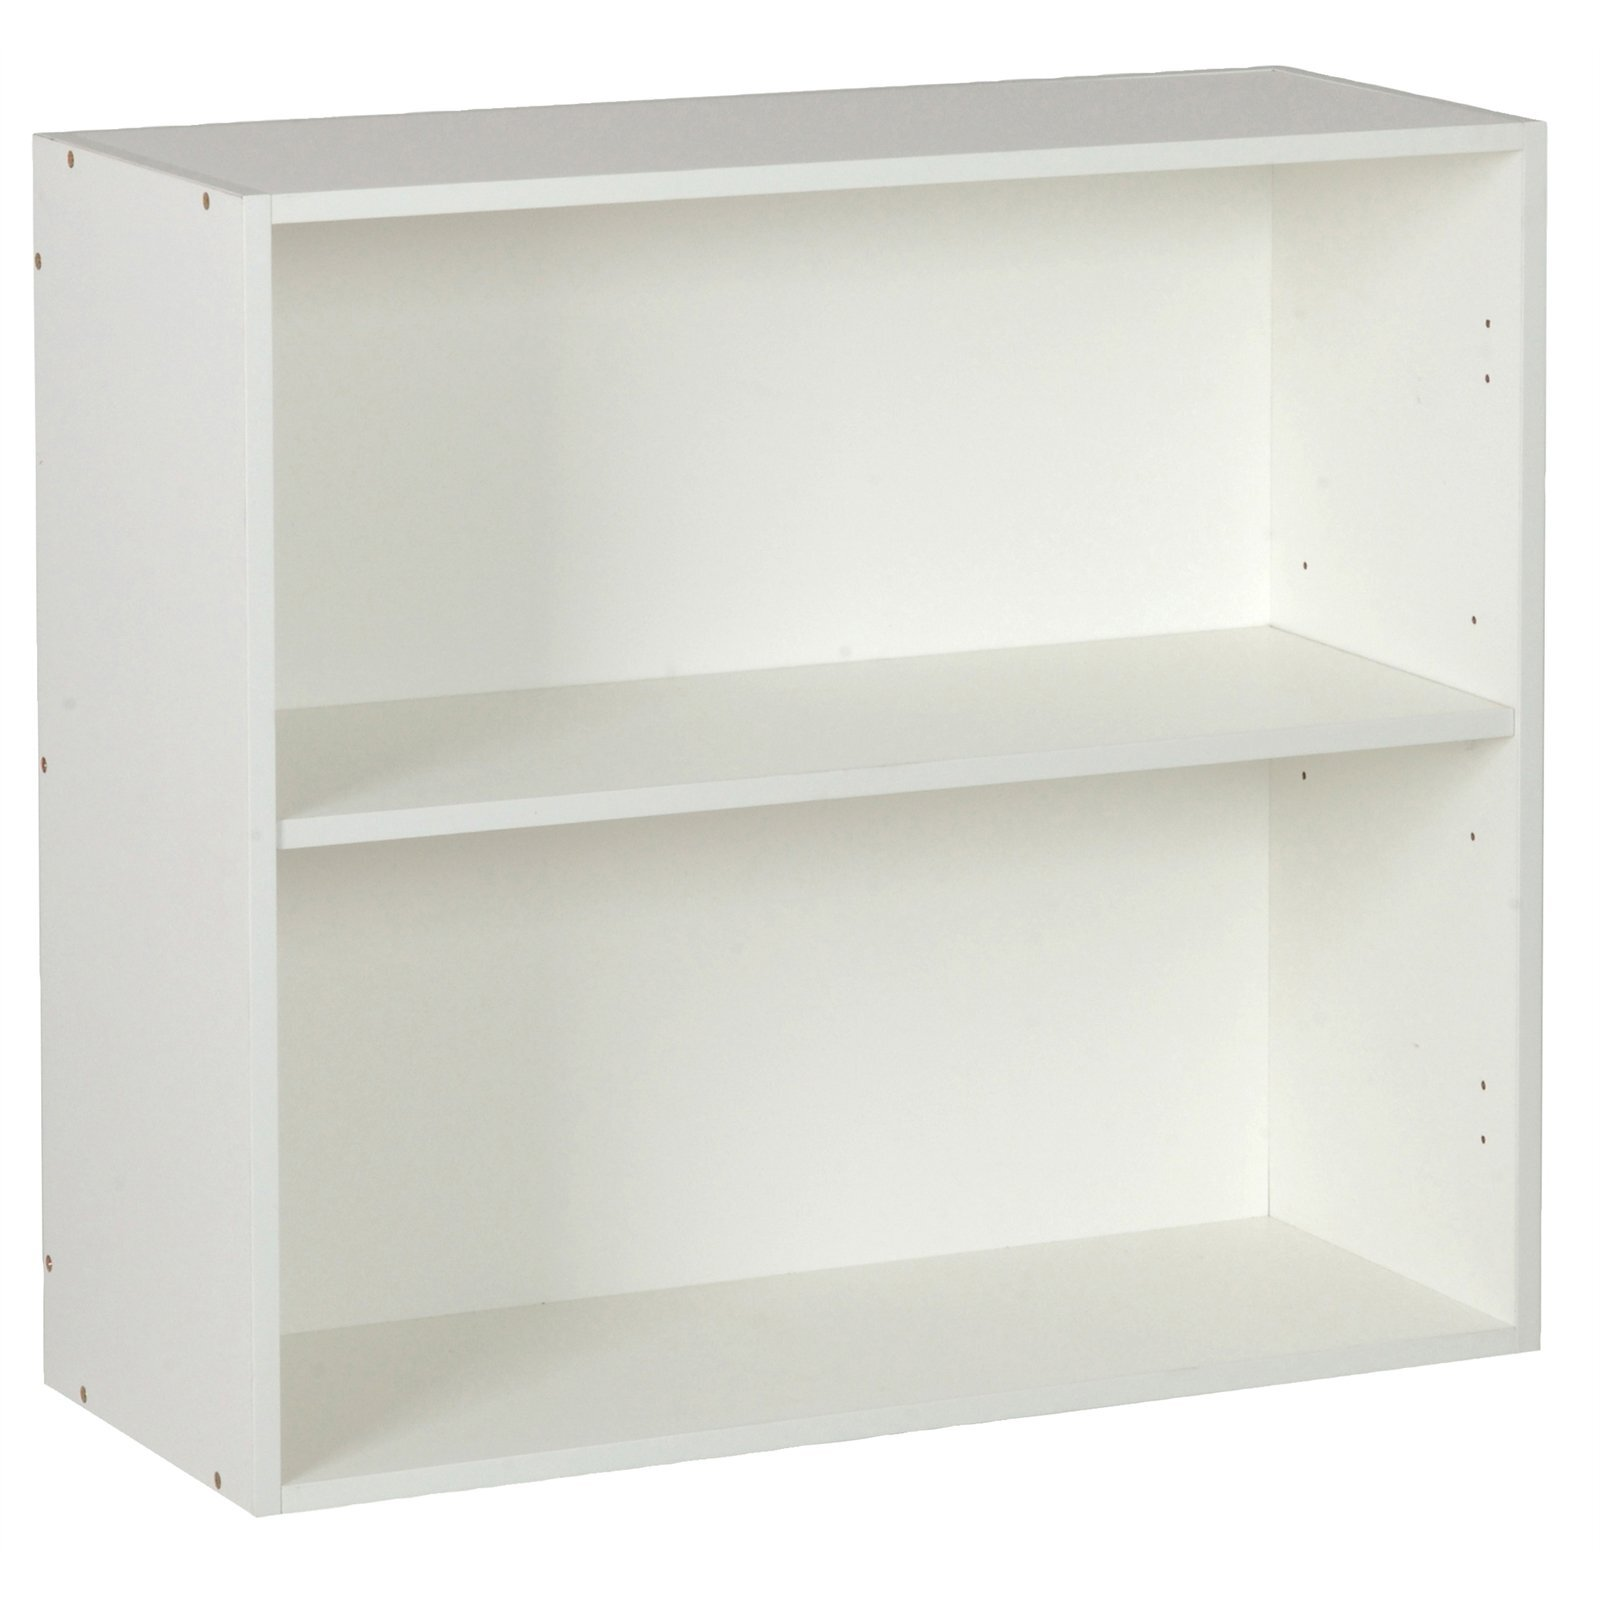 Kaboodle 900mm Wall Cabinet